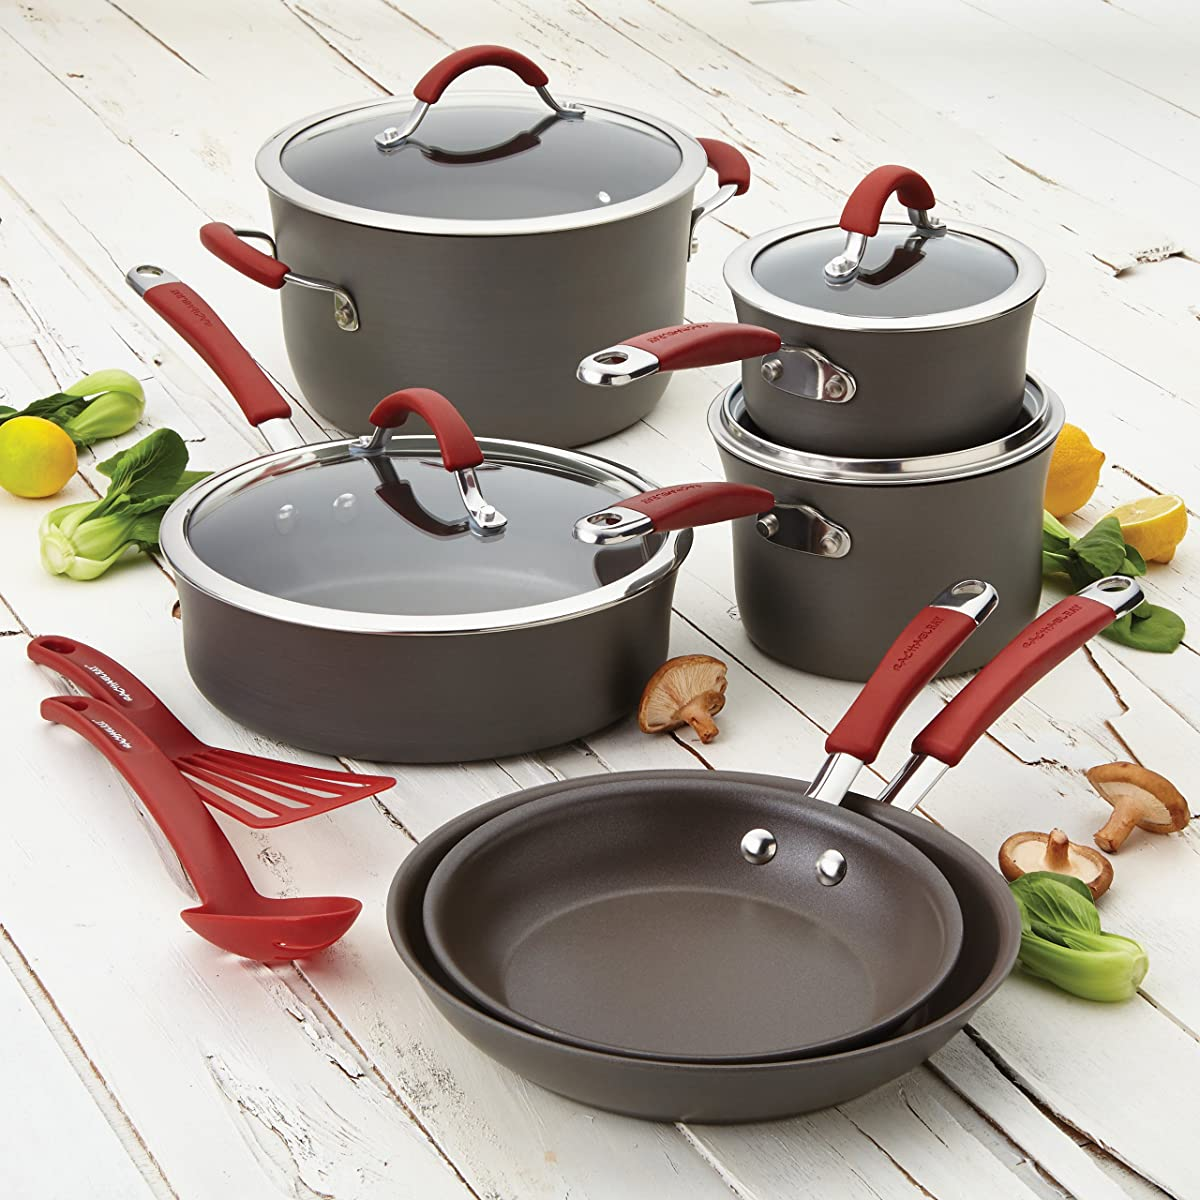 Rachael Ray Cookware Set via Amazon